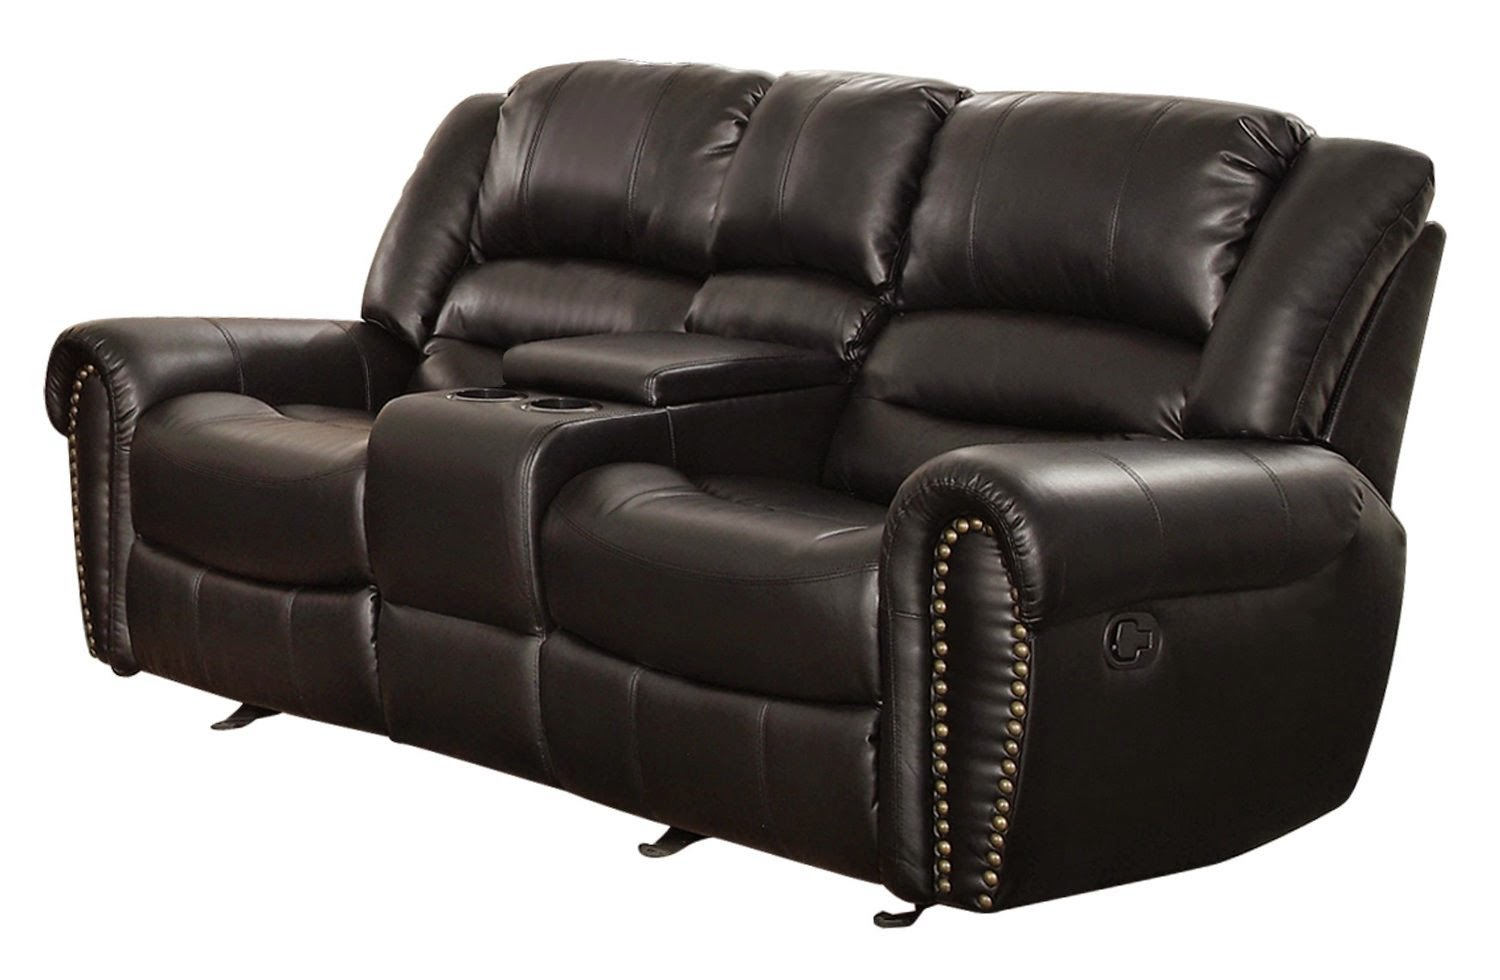 double reclining leather sofa cheap small sectional the best reviews rotunda black faux